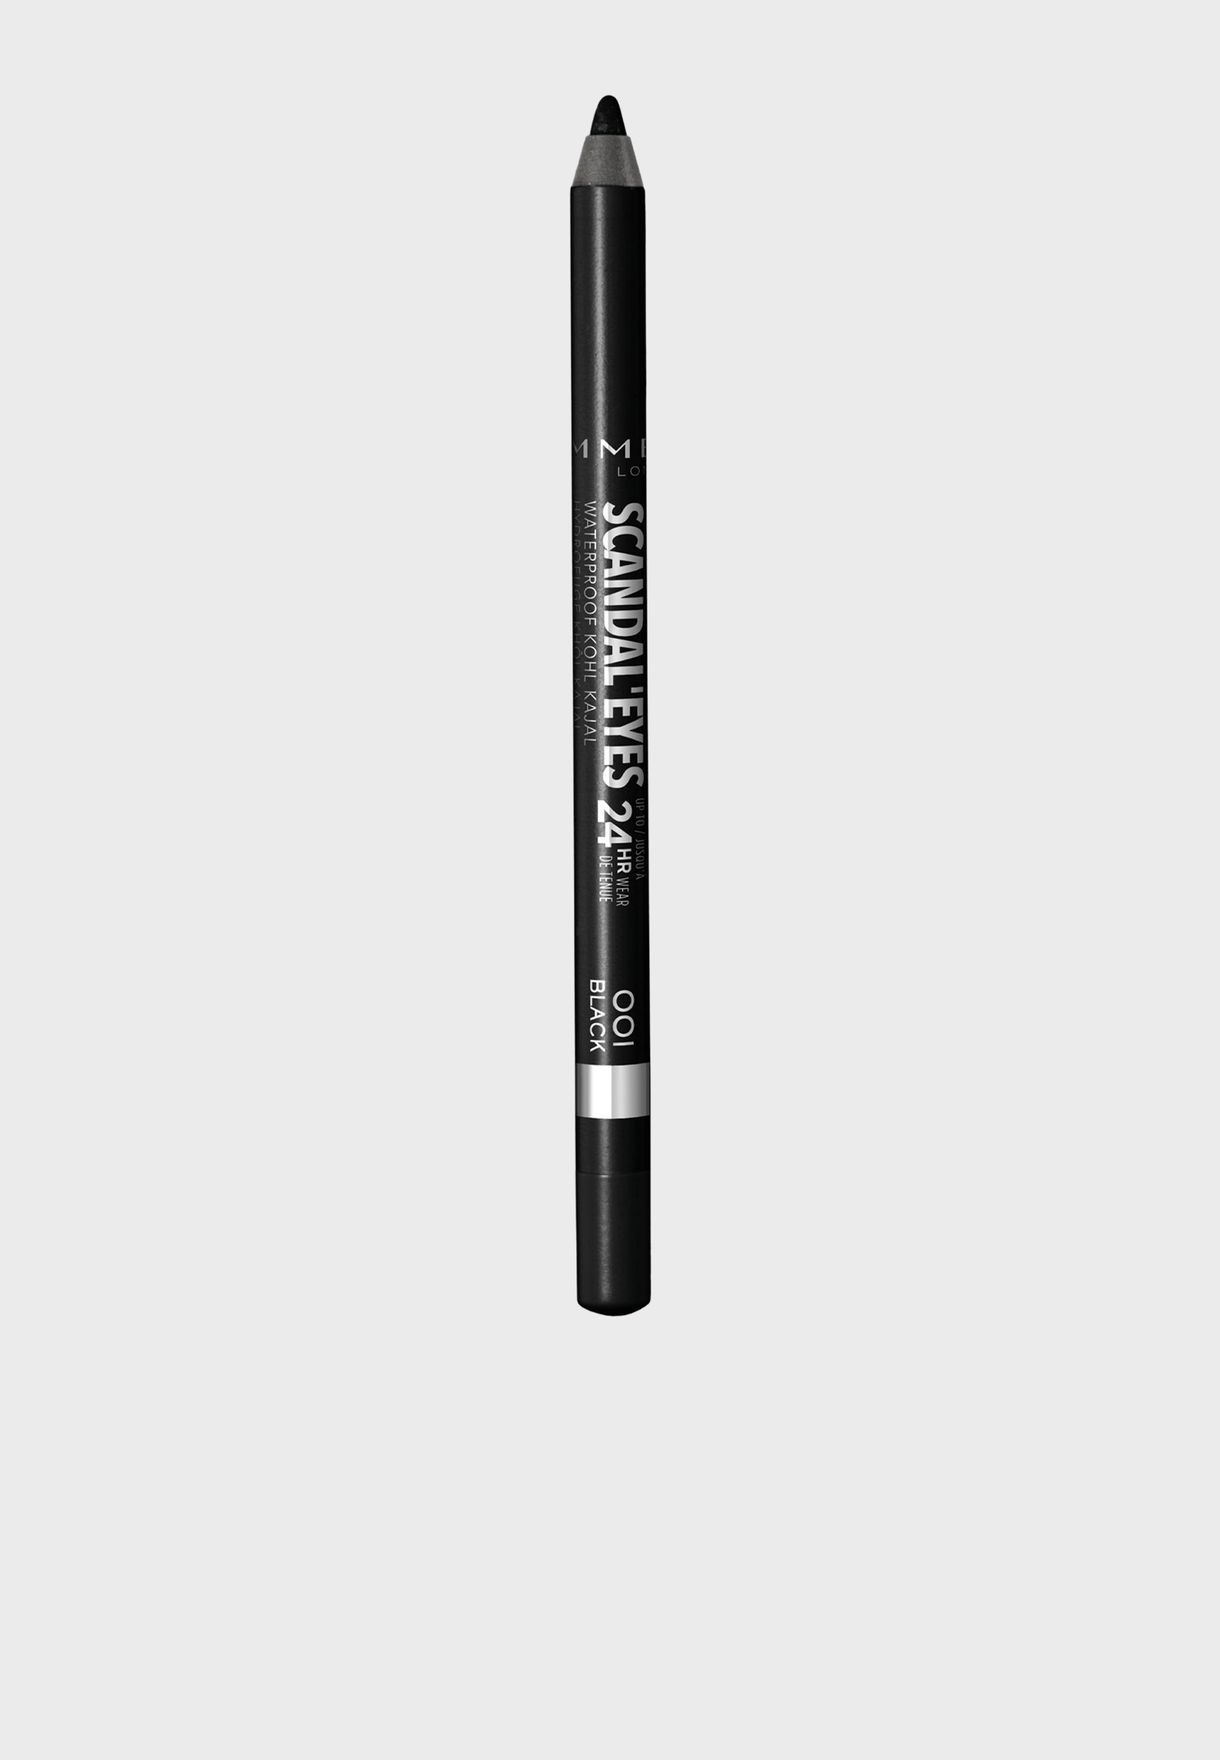 Scandaleyes Waterproof Kohl Kajal Liner- 001 Black